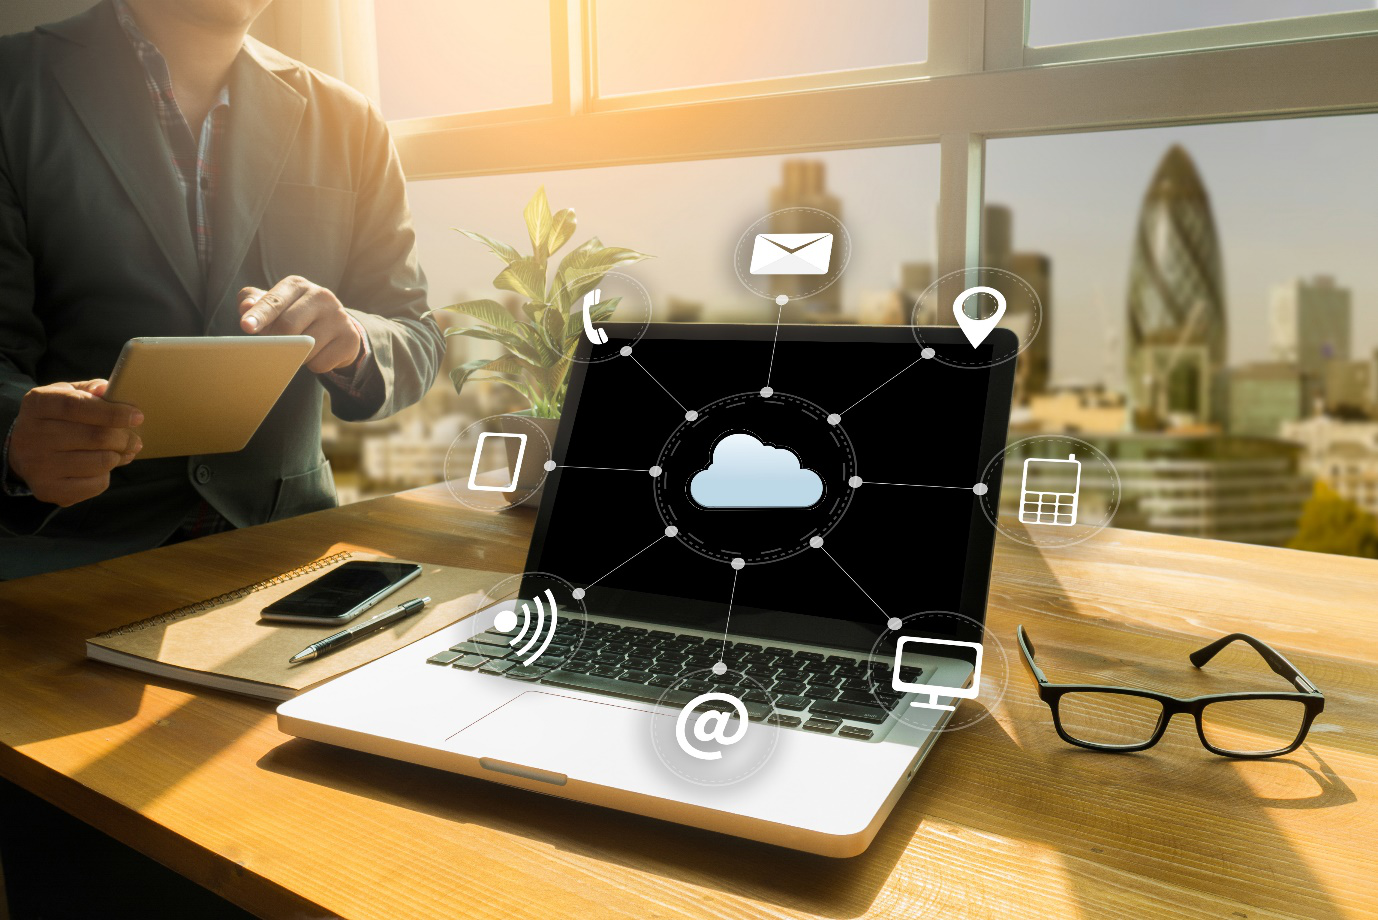 Cloud Computing – Here's What You Need To Know About Pursuing A Career